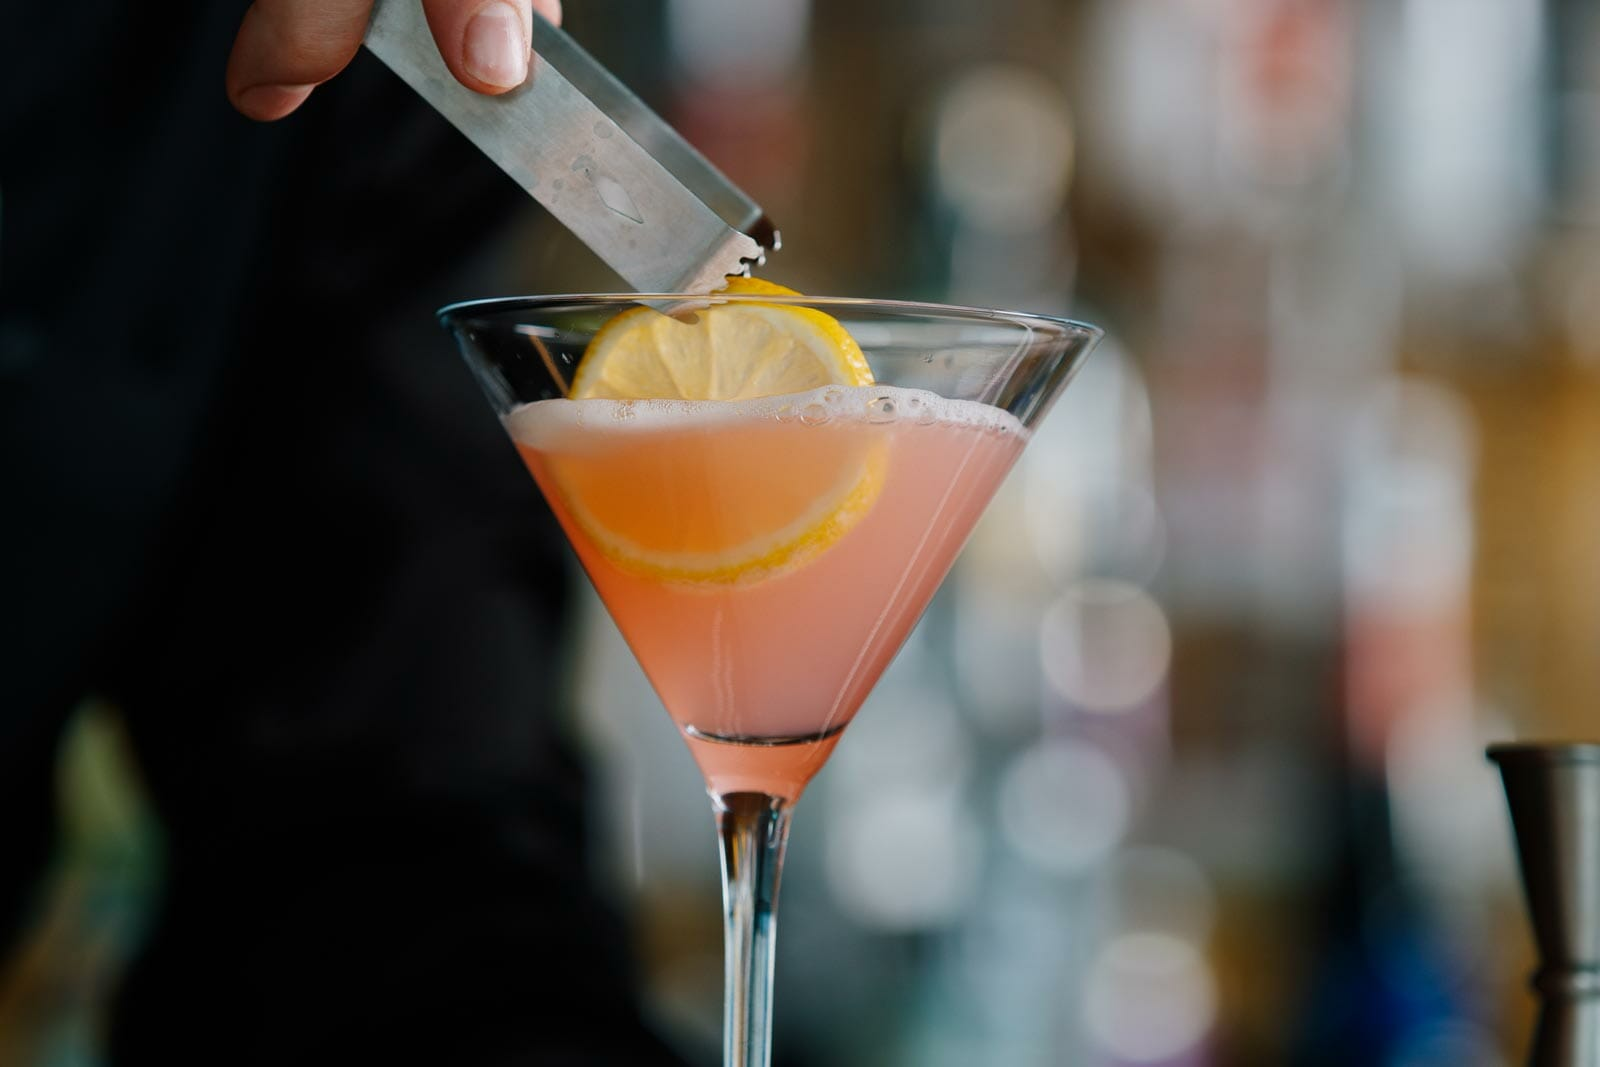 A bartender using tongs to drop a lemon slice garnish in a pink cocktail served in a martini glass